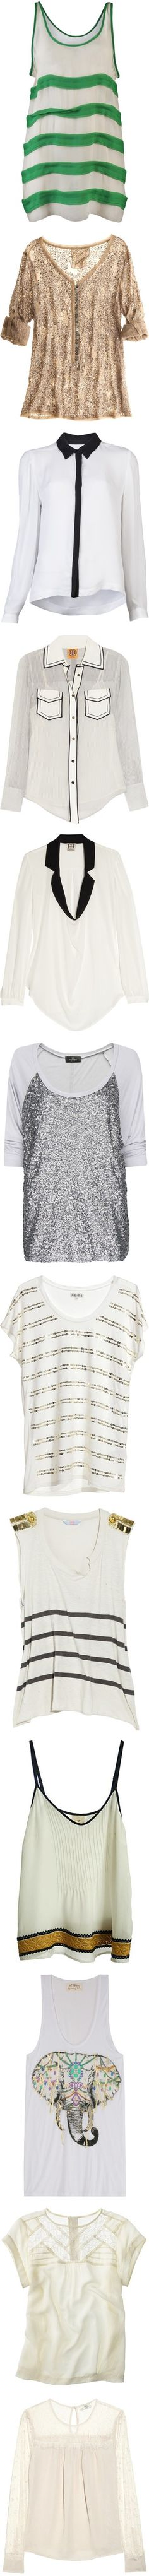 """""""tops II"""" by luxurist ❤ liked on Polyvore"""